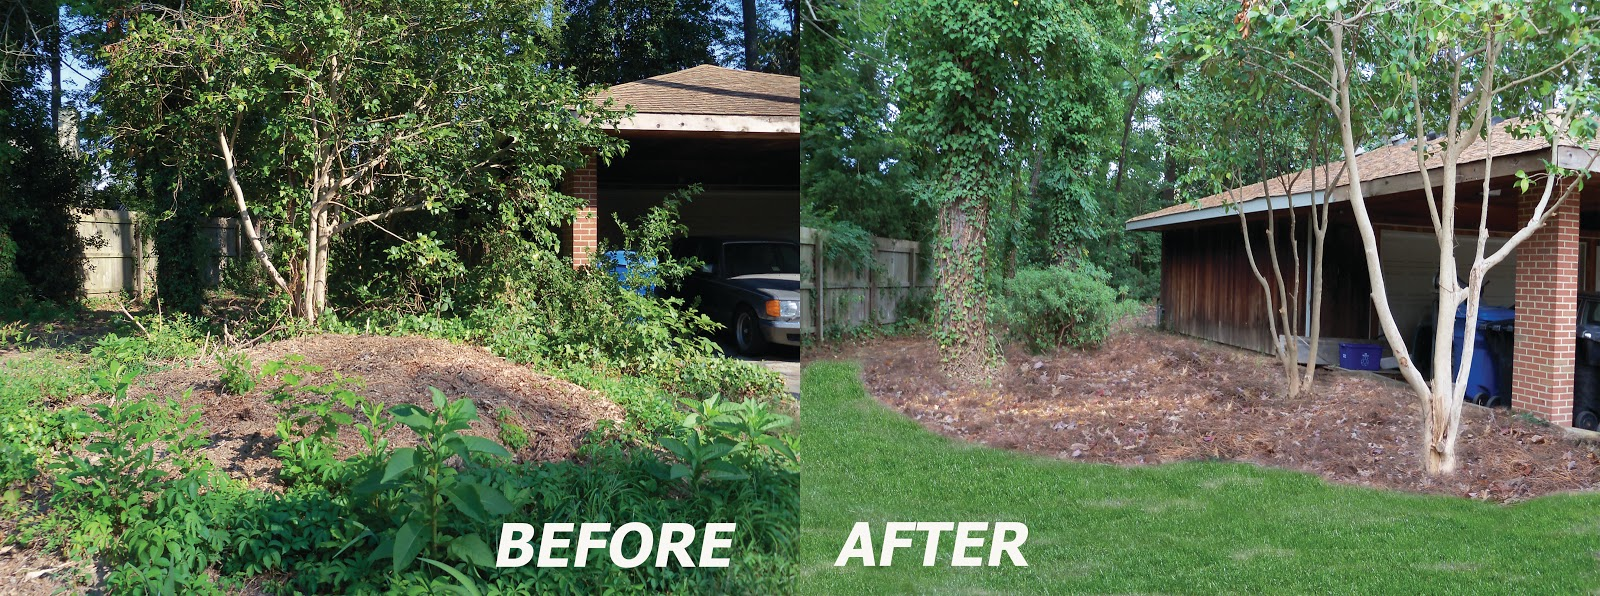 dr  dan u0026 39 s garden tips  before and after